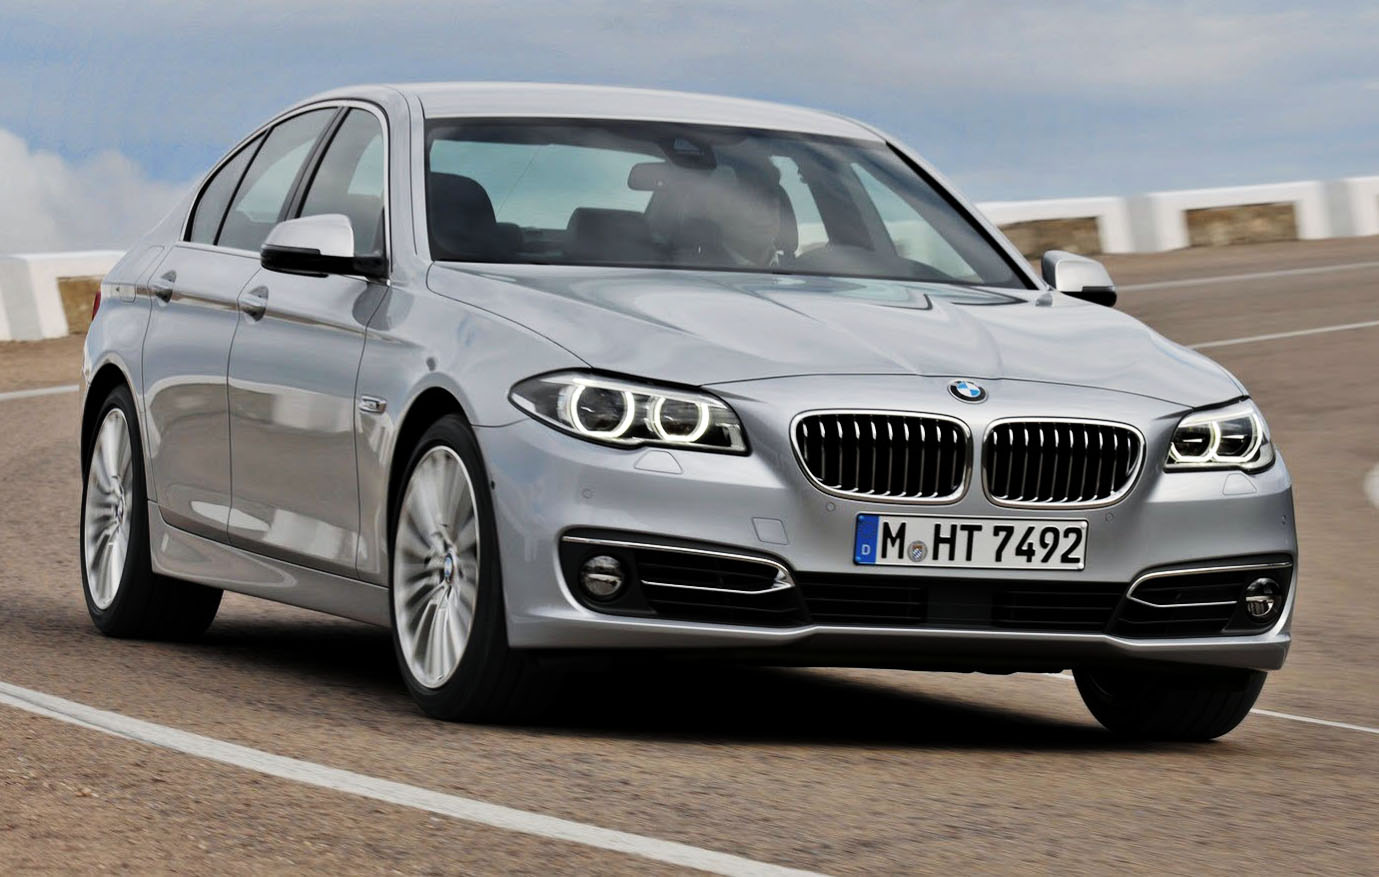 BMW 5 series 550i 2014 photo - 7